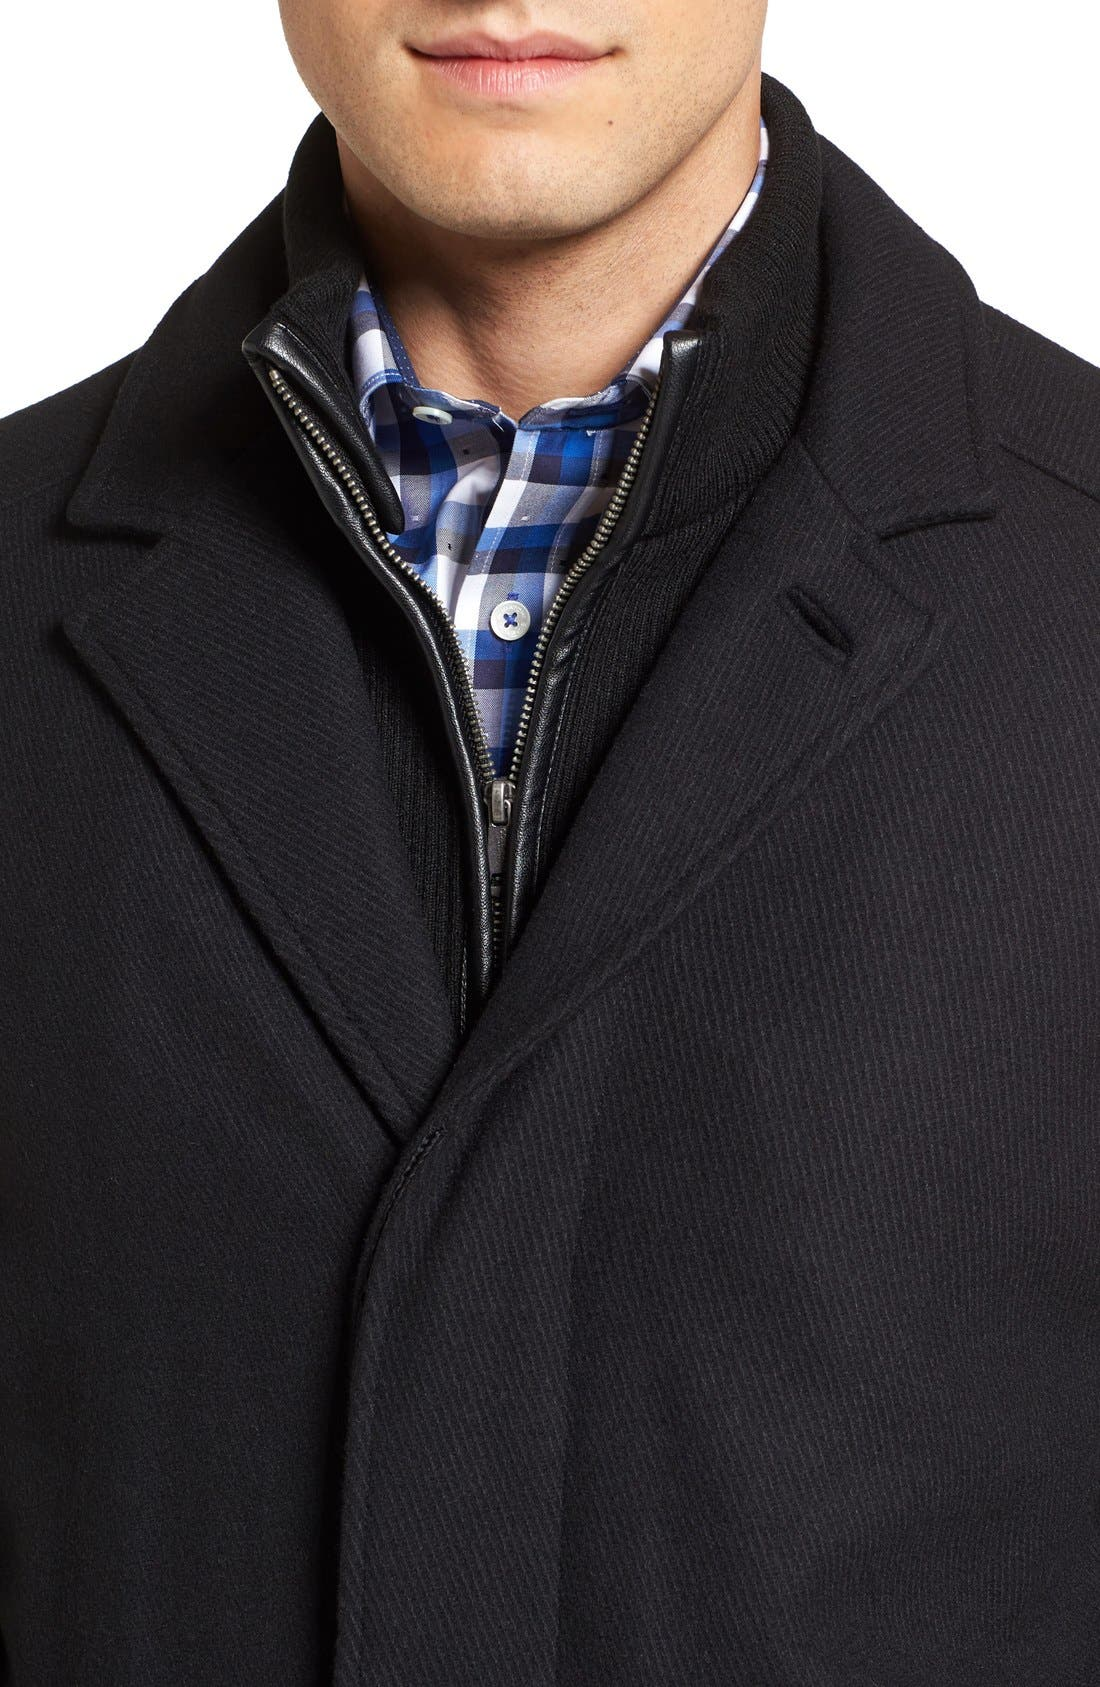 Wool Blend Overcoat with Knit Bib Inset,                             Alternate thumbnail 4, color,                             BLACK